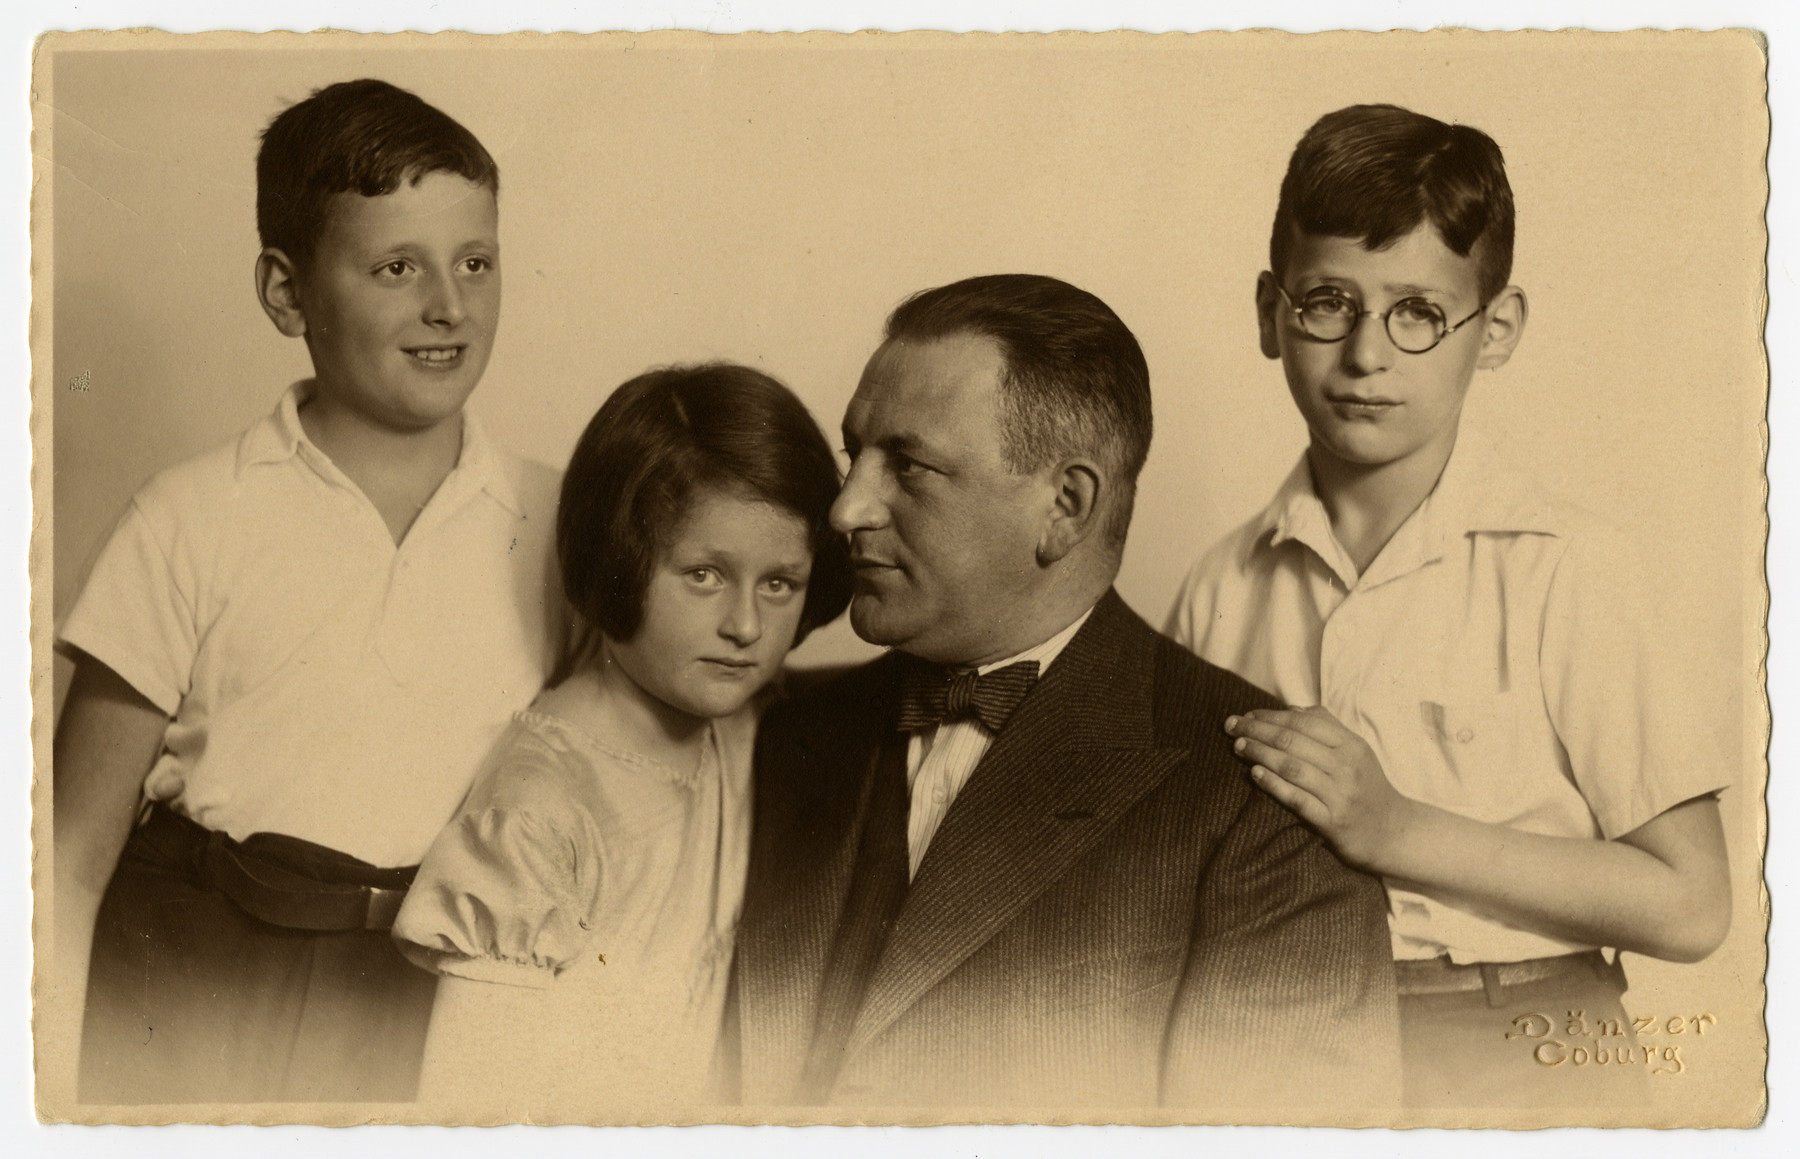 Studio portrait of the Forchheimer family in Coburg, Germany.  From left to right are Peter, Anne, Emil and Franz Forchheimer.